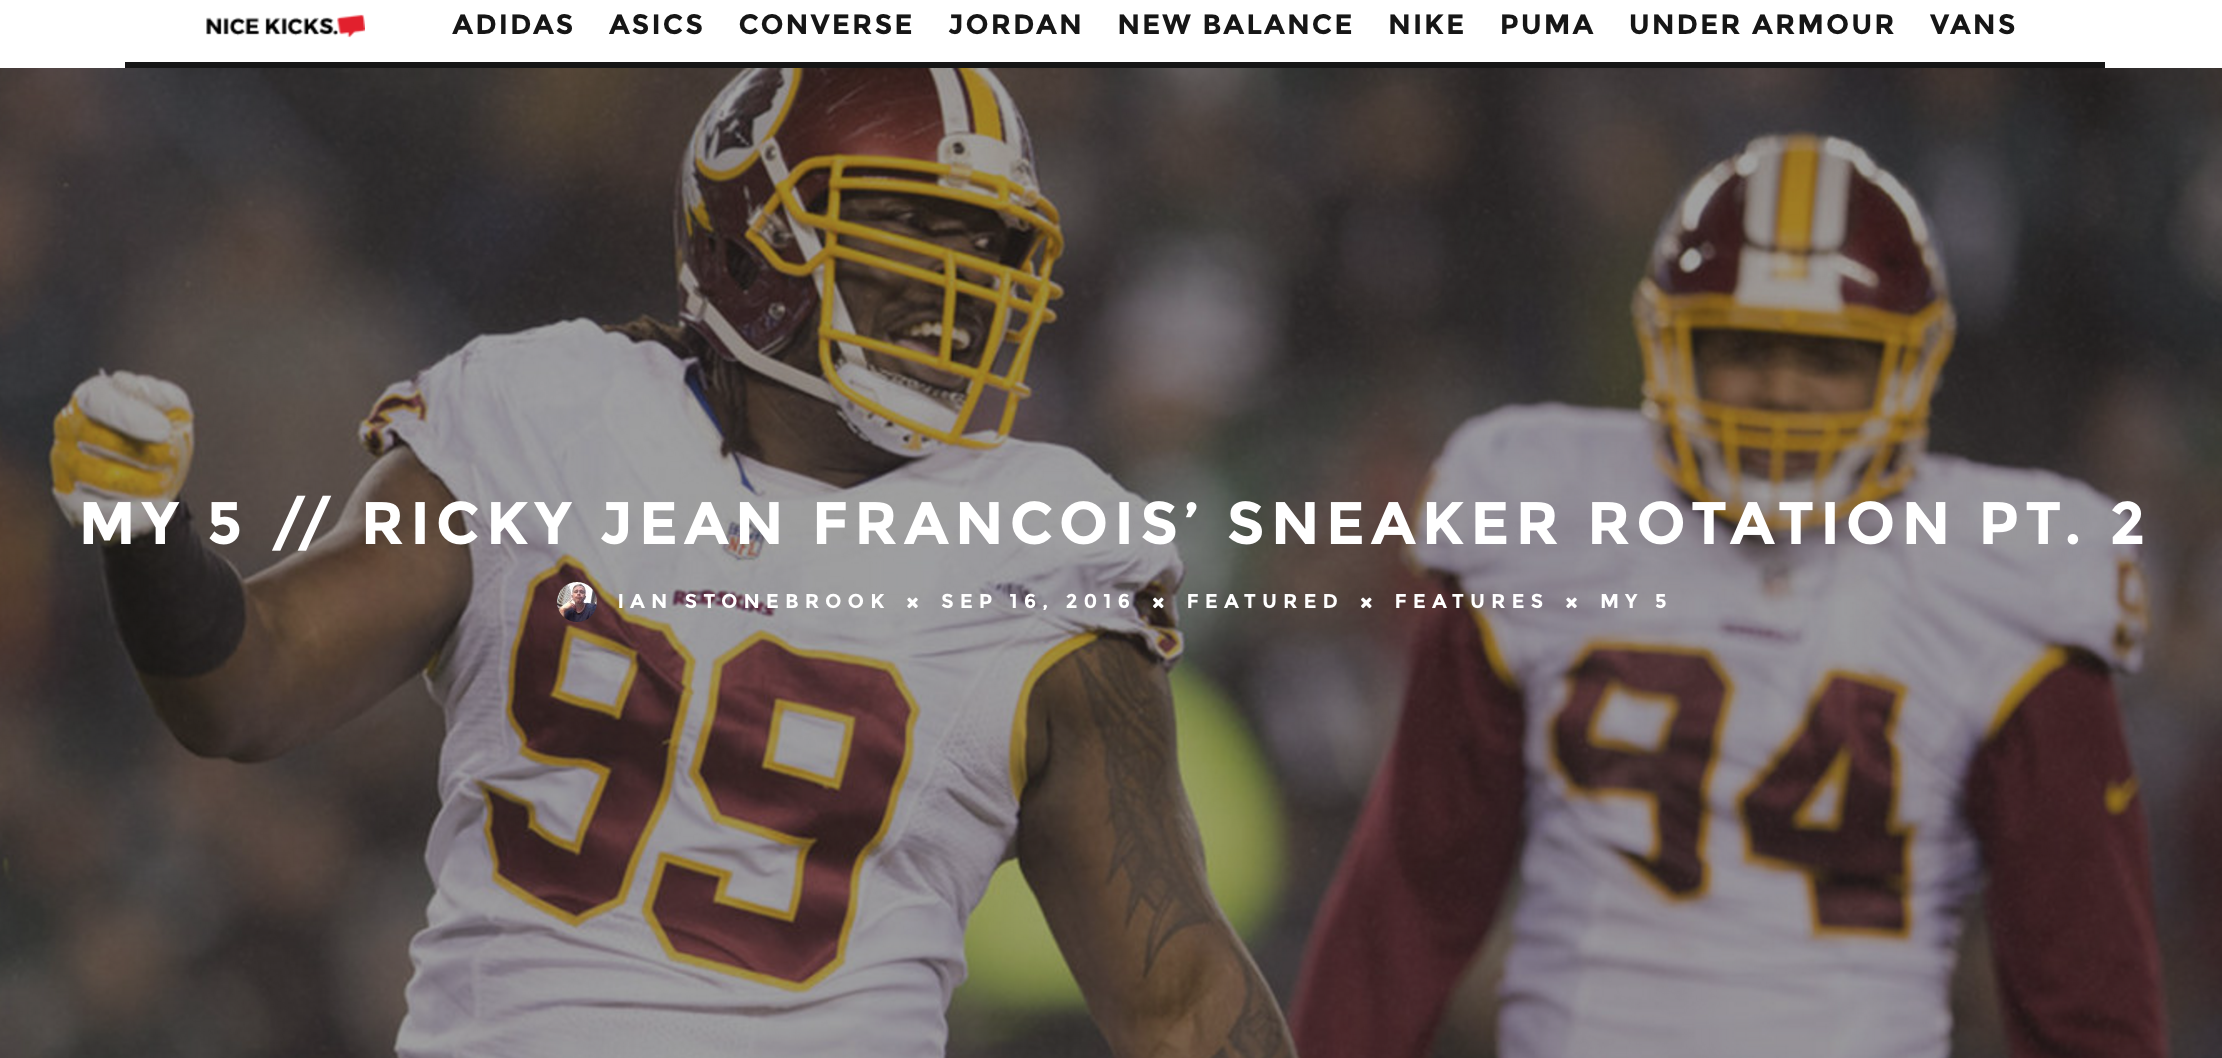 Redskins' ricky jean francois breaks down the five pairs of sneakers currently in his rotation for nice kicks.